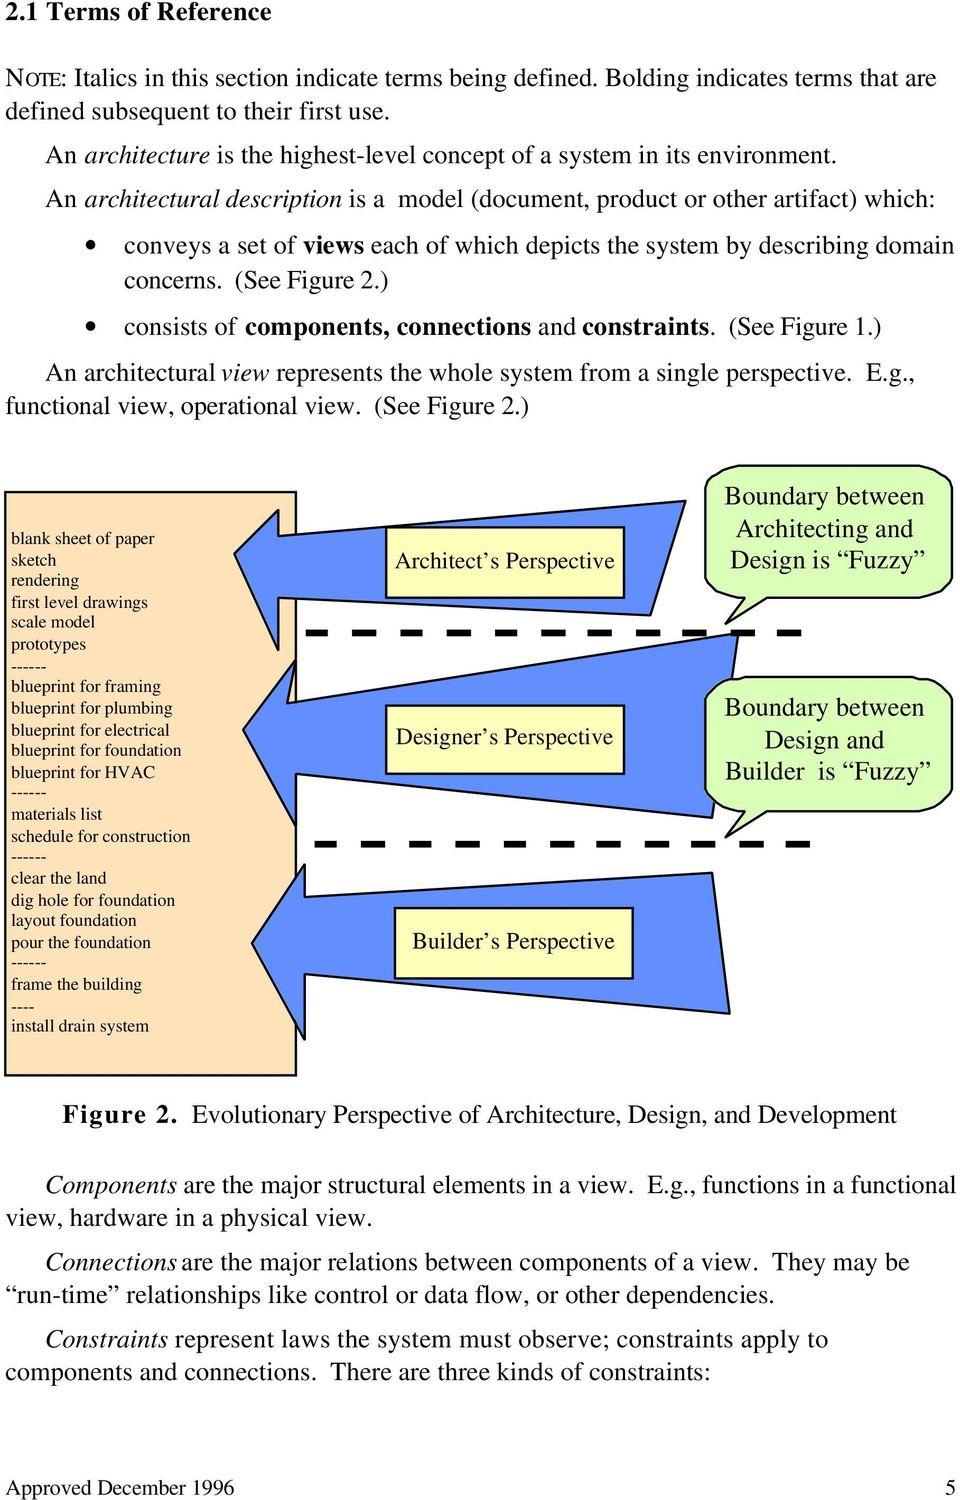 An architectural description is a model (document, product or other artifact) which: conveys a set of views each of which depicts the system by describing domain concerns. (See Figure 2.